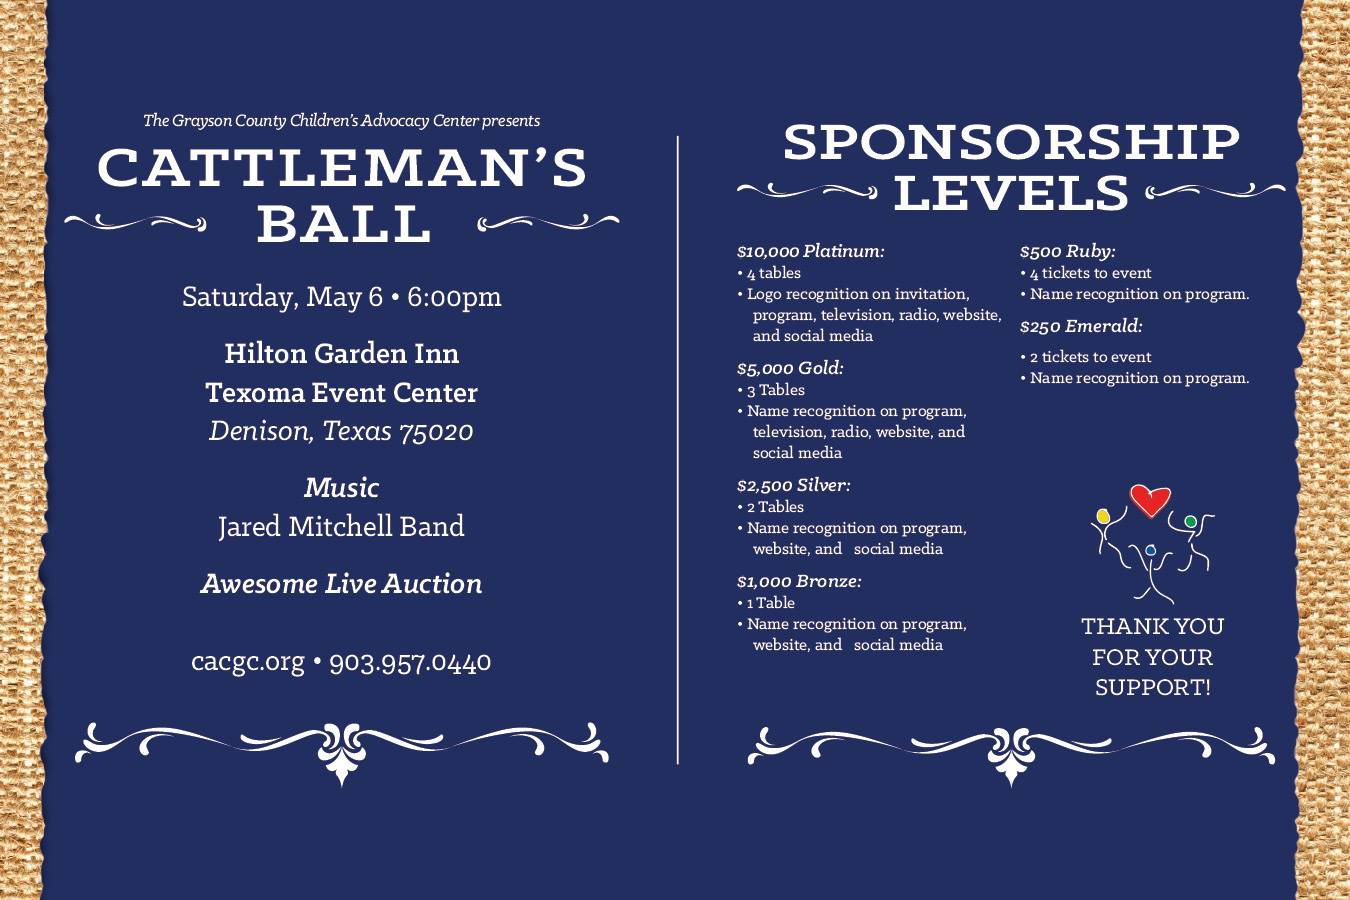 Cattlemans Ball - Lake Kiowa Realty